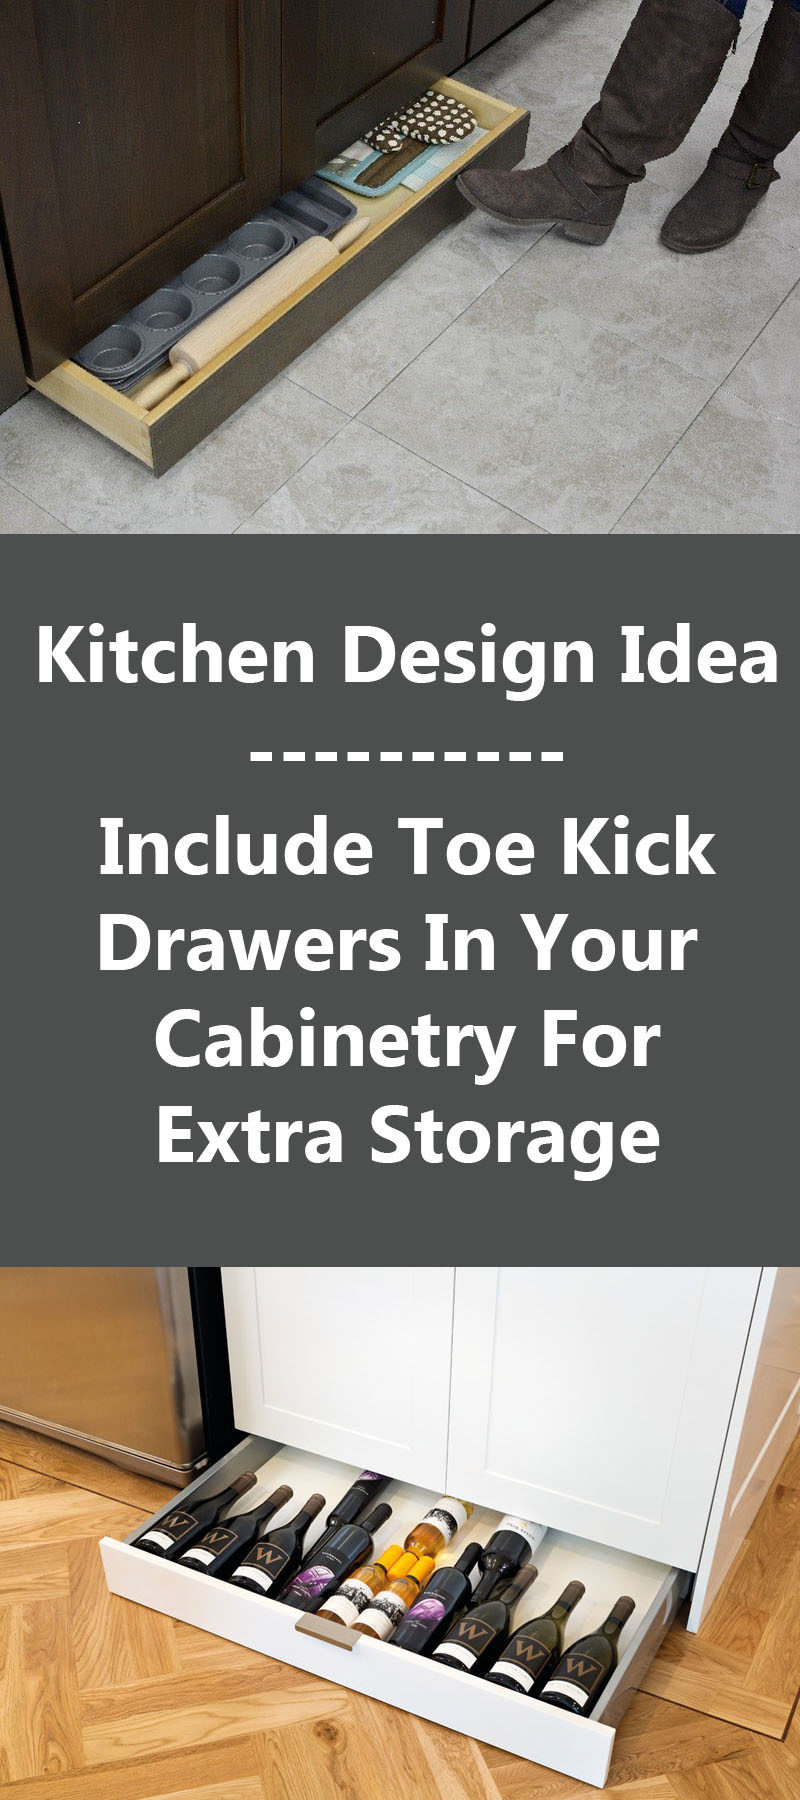 Kitchen Design Idea - Include Toe Kick Drawers In Your Cabinetry For Extra Storage